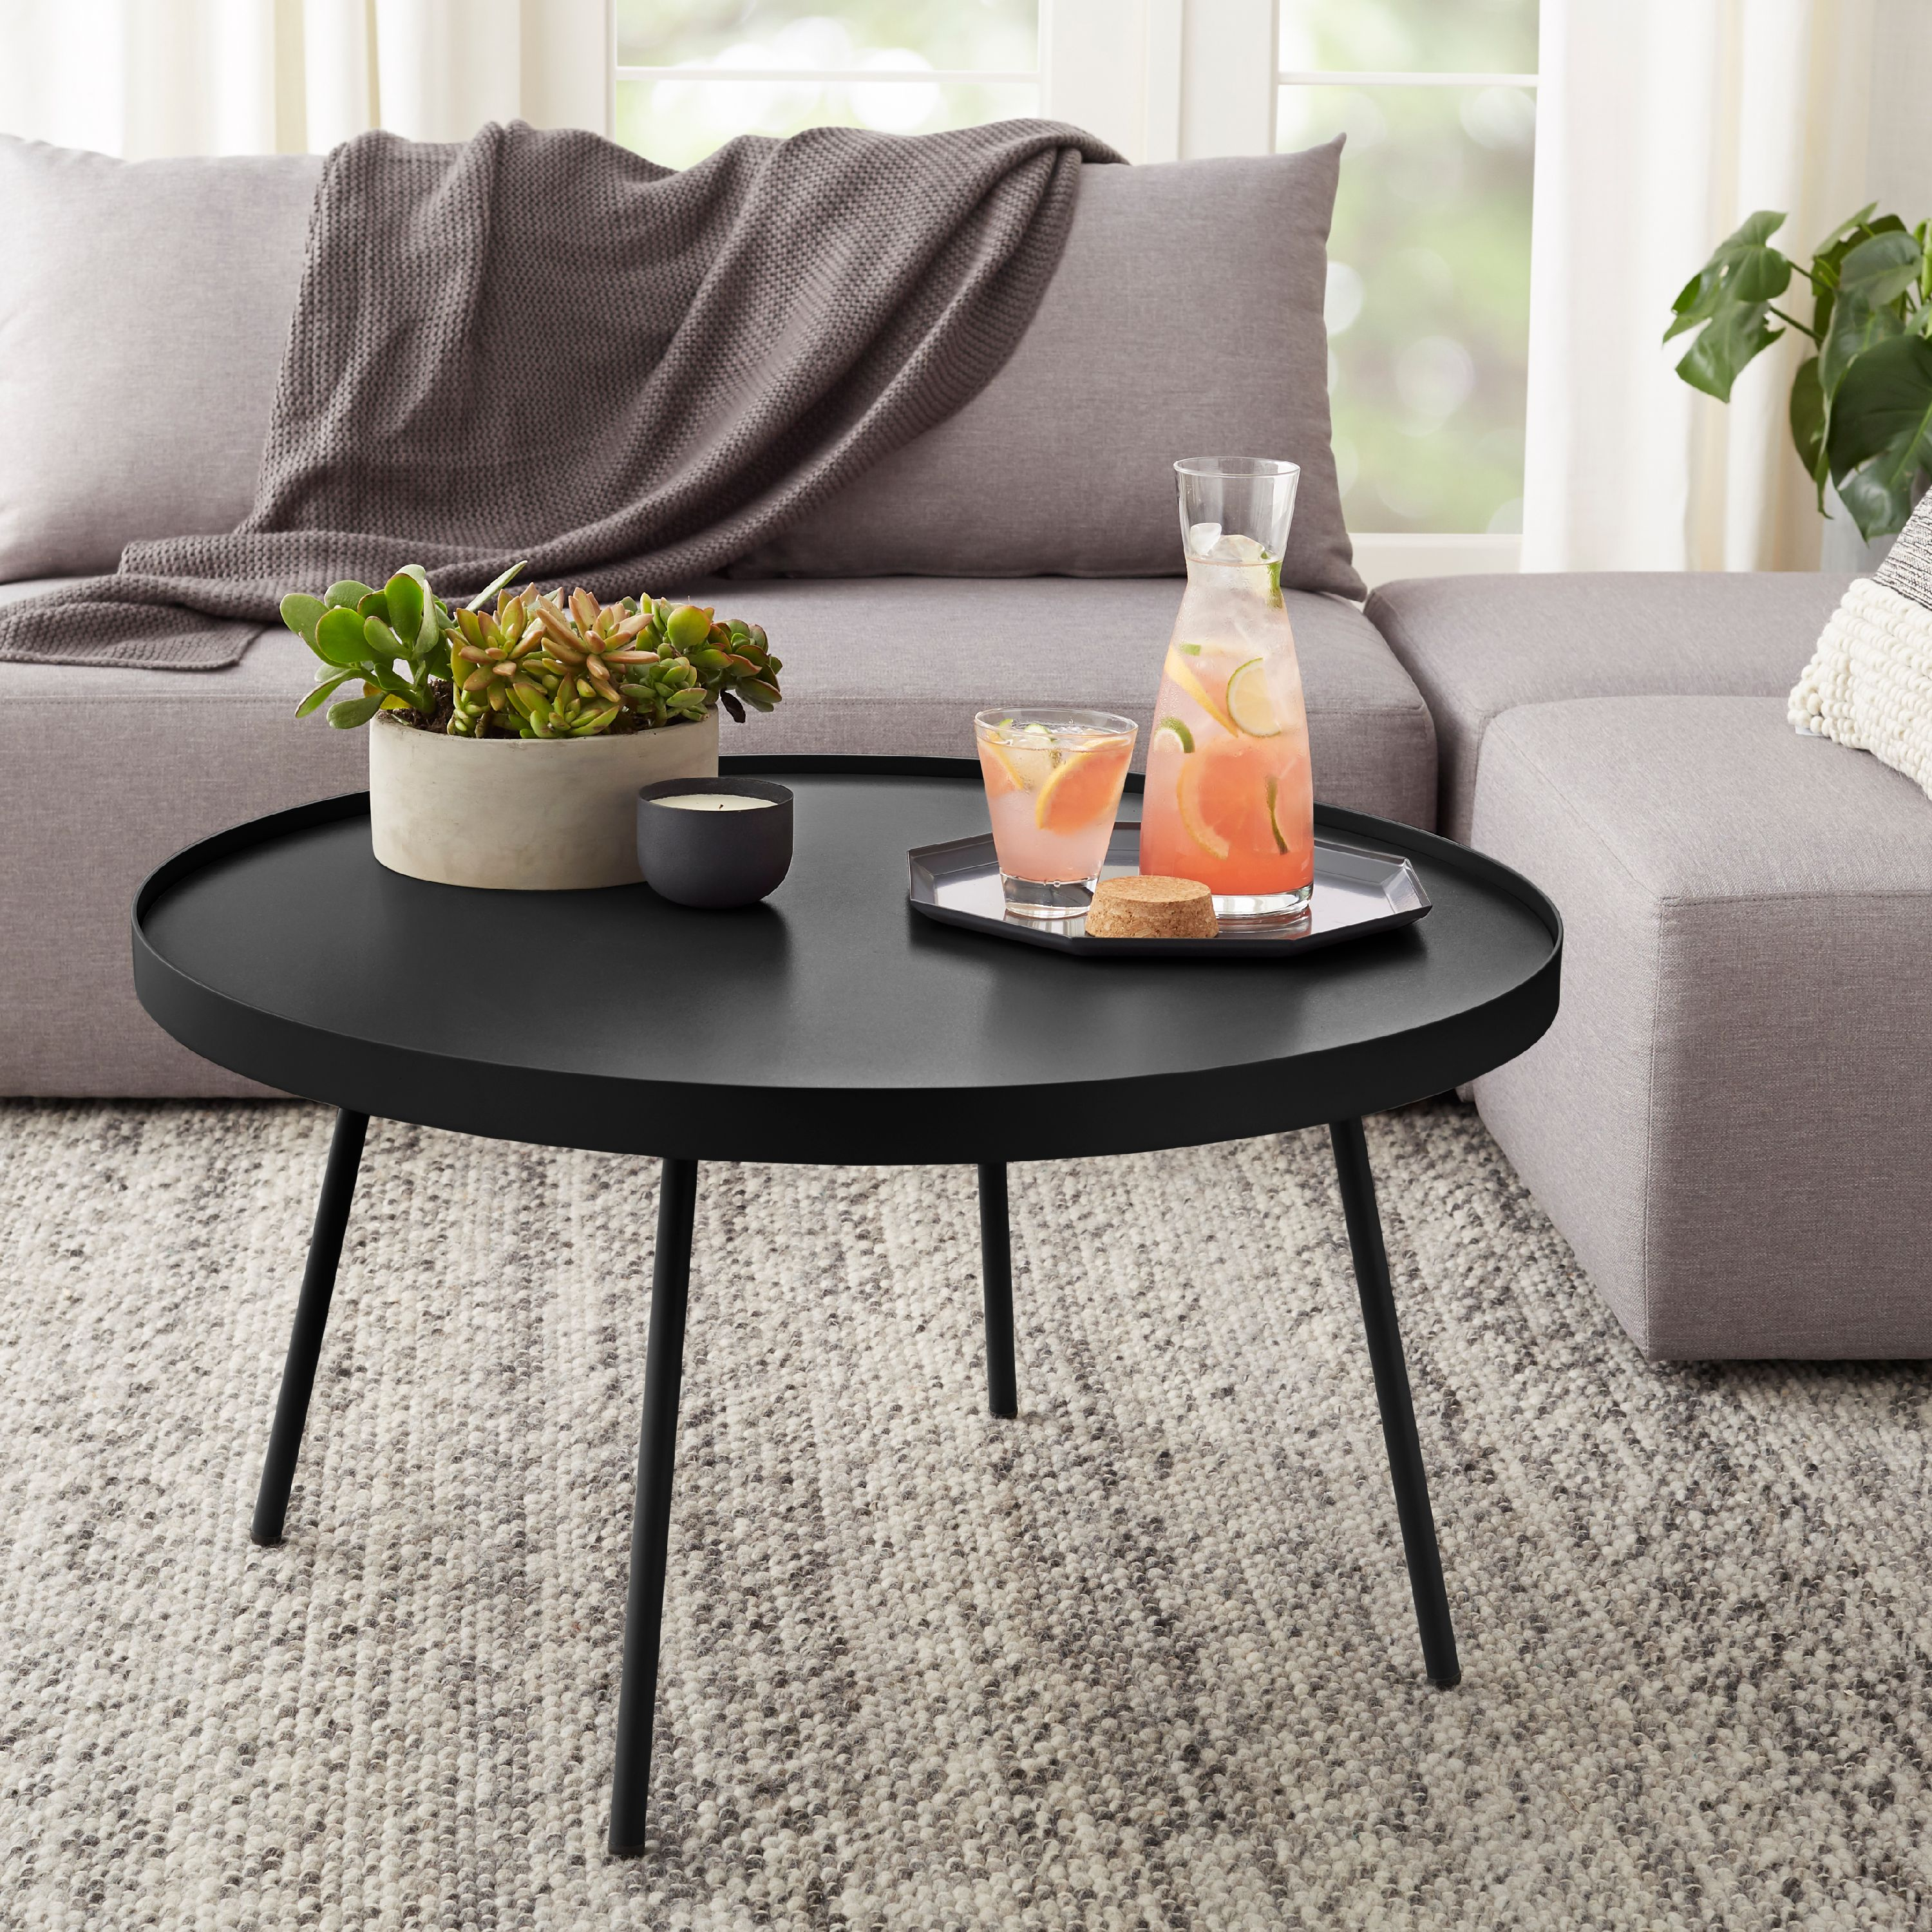 Mainstays Arlo Round Coffee Table Multiple Finishes Walmart Com